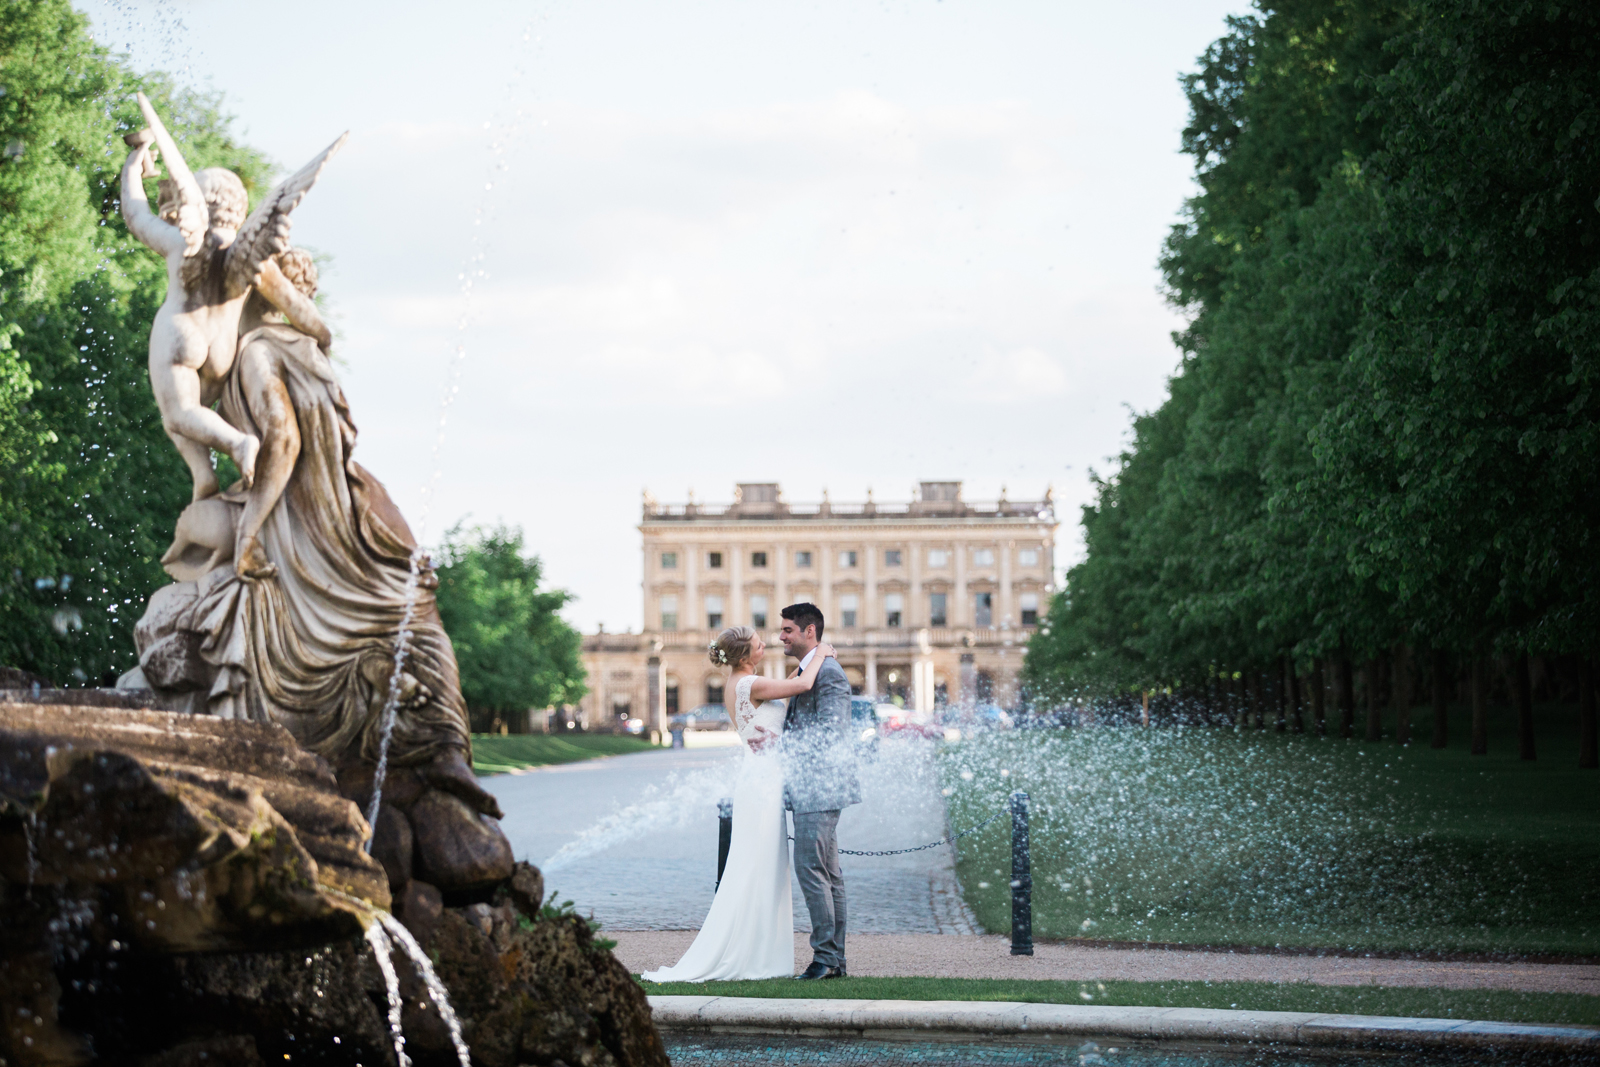 Bride and Groom at the Fountain - Cliveden House